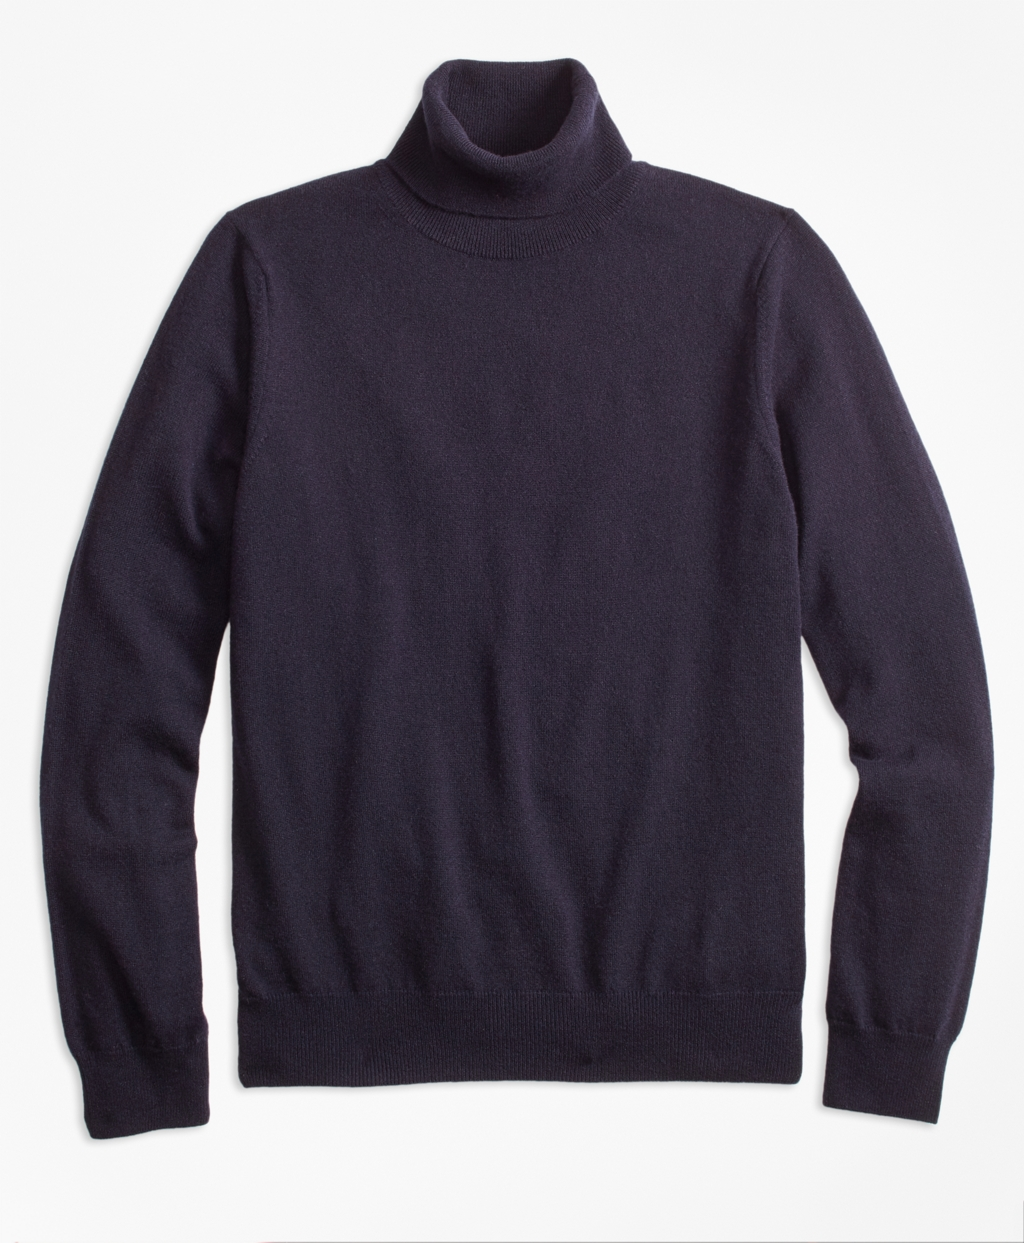 1920s Mens Sweaters, Pullovers, Cardigans Brooks Brothers Mens Turtleneck Cashmere Sweater $298.00 AT vintagedancer.com